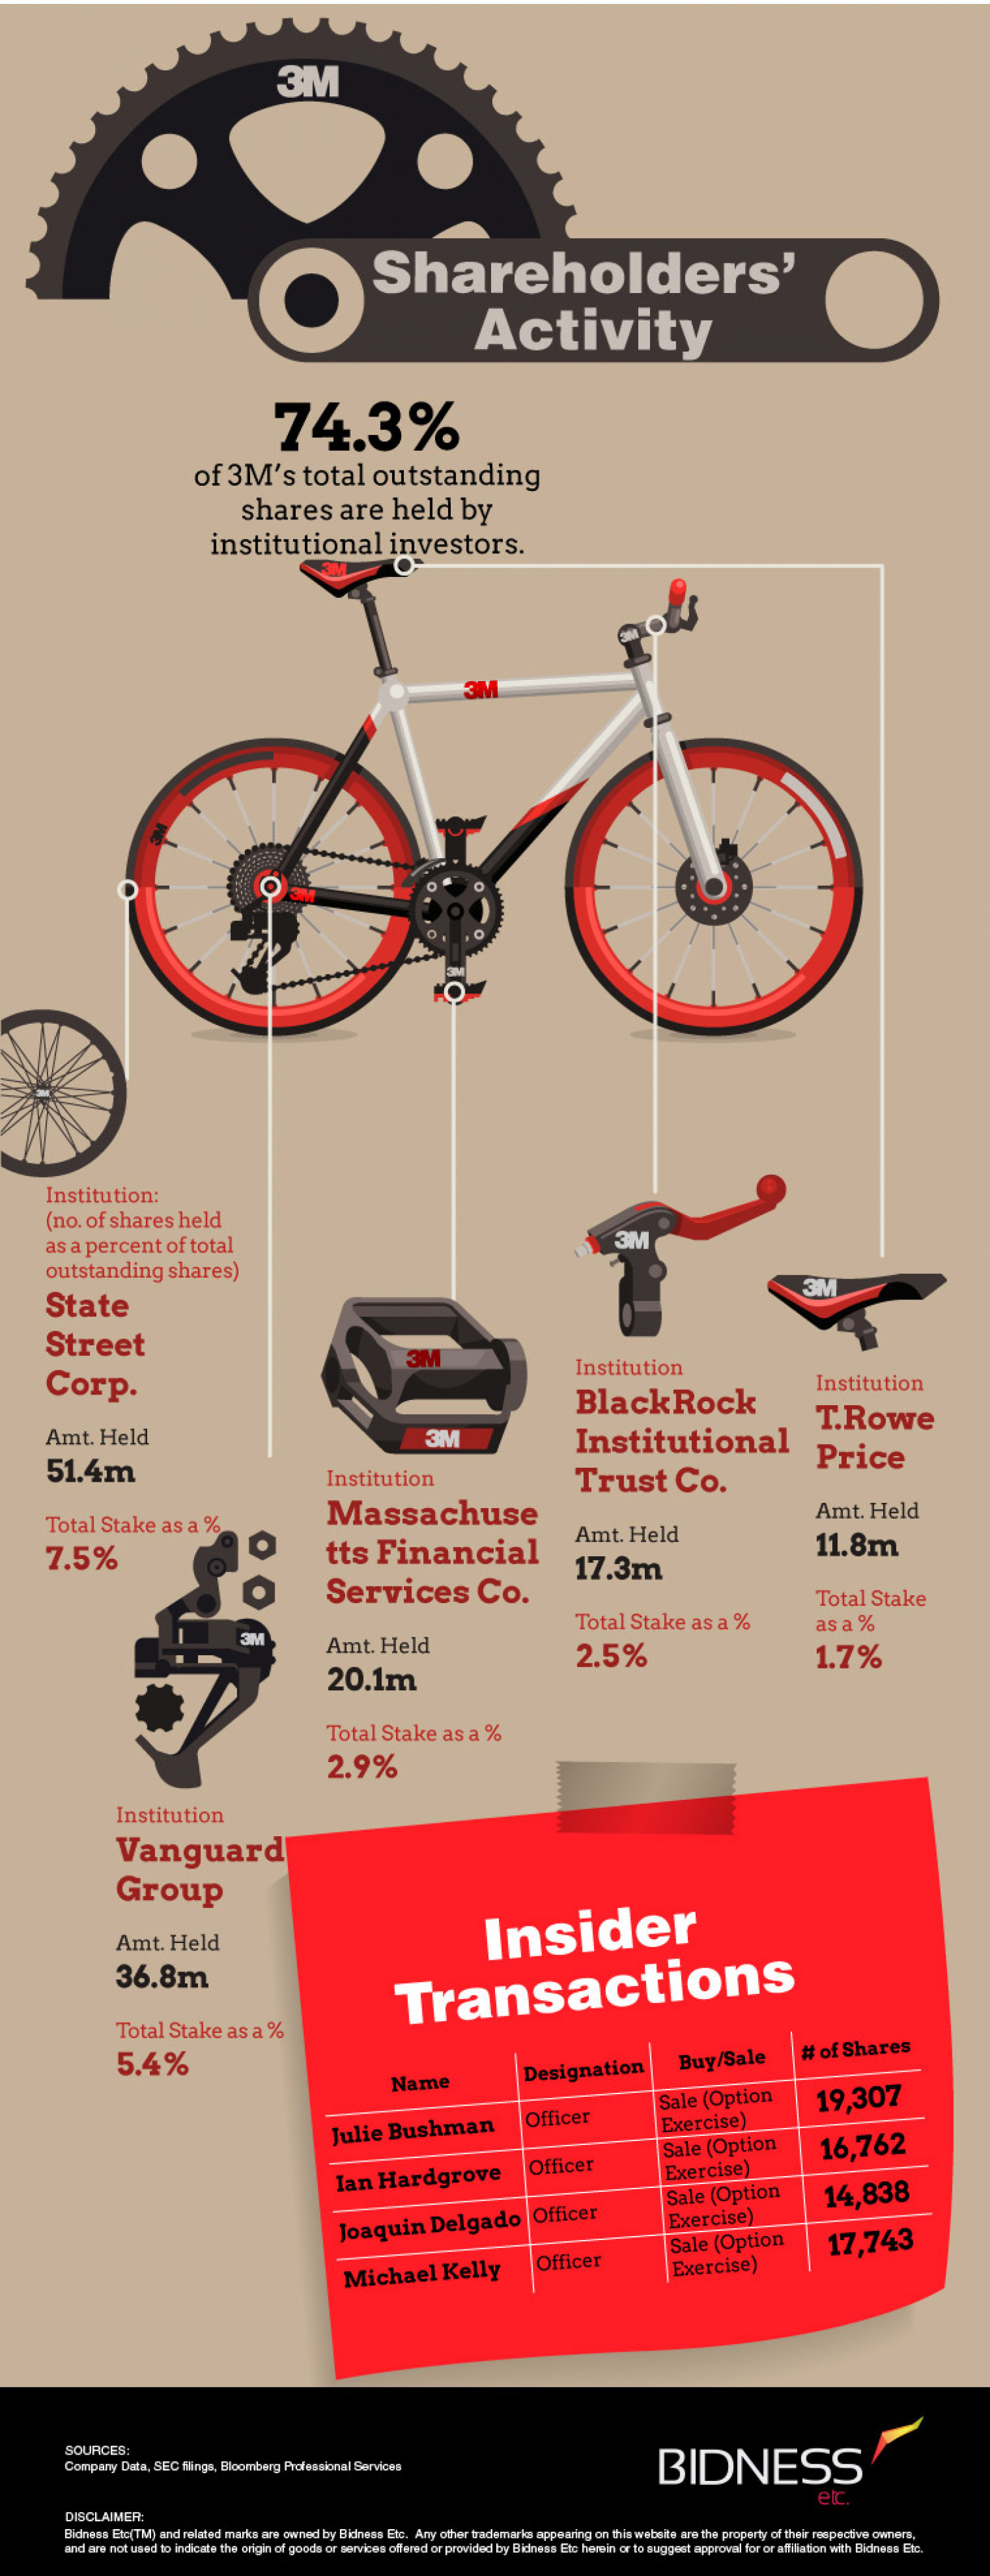 Shareholder Activity Infographic